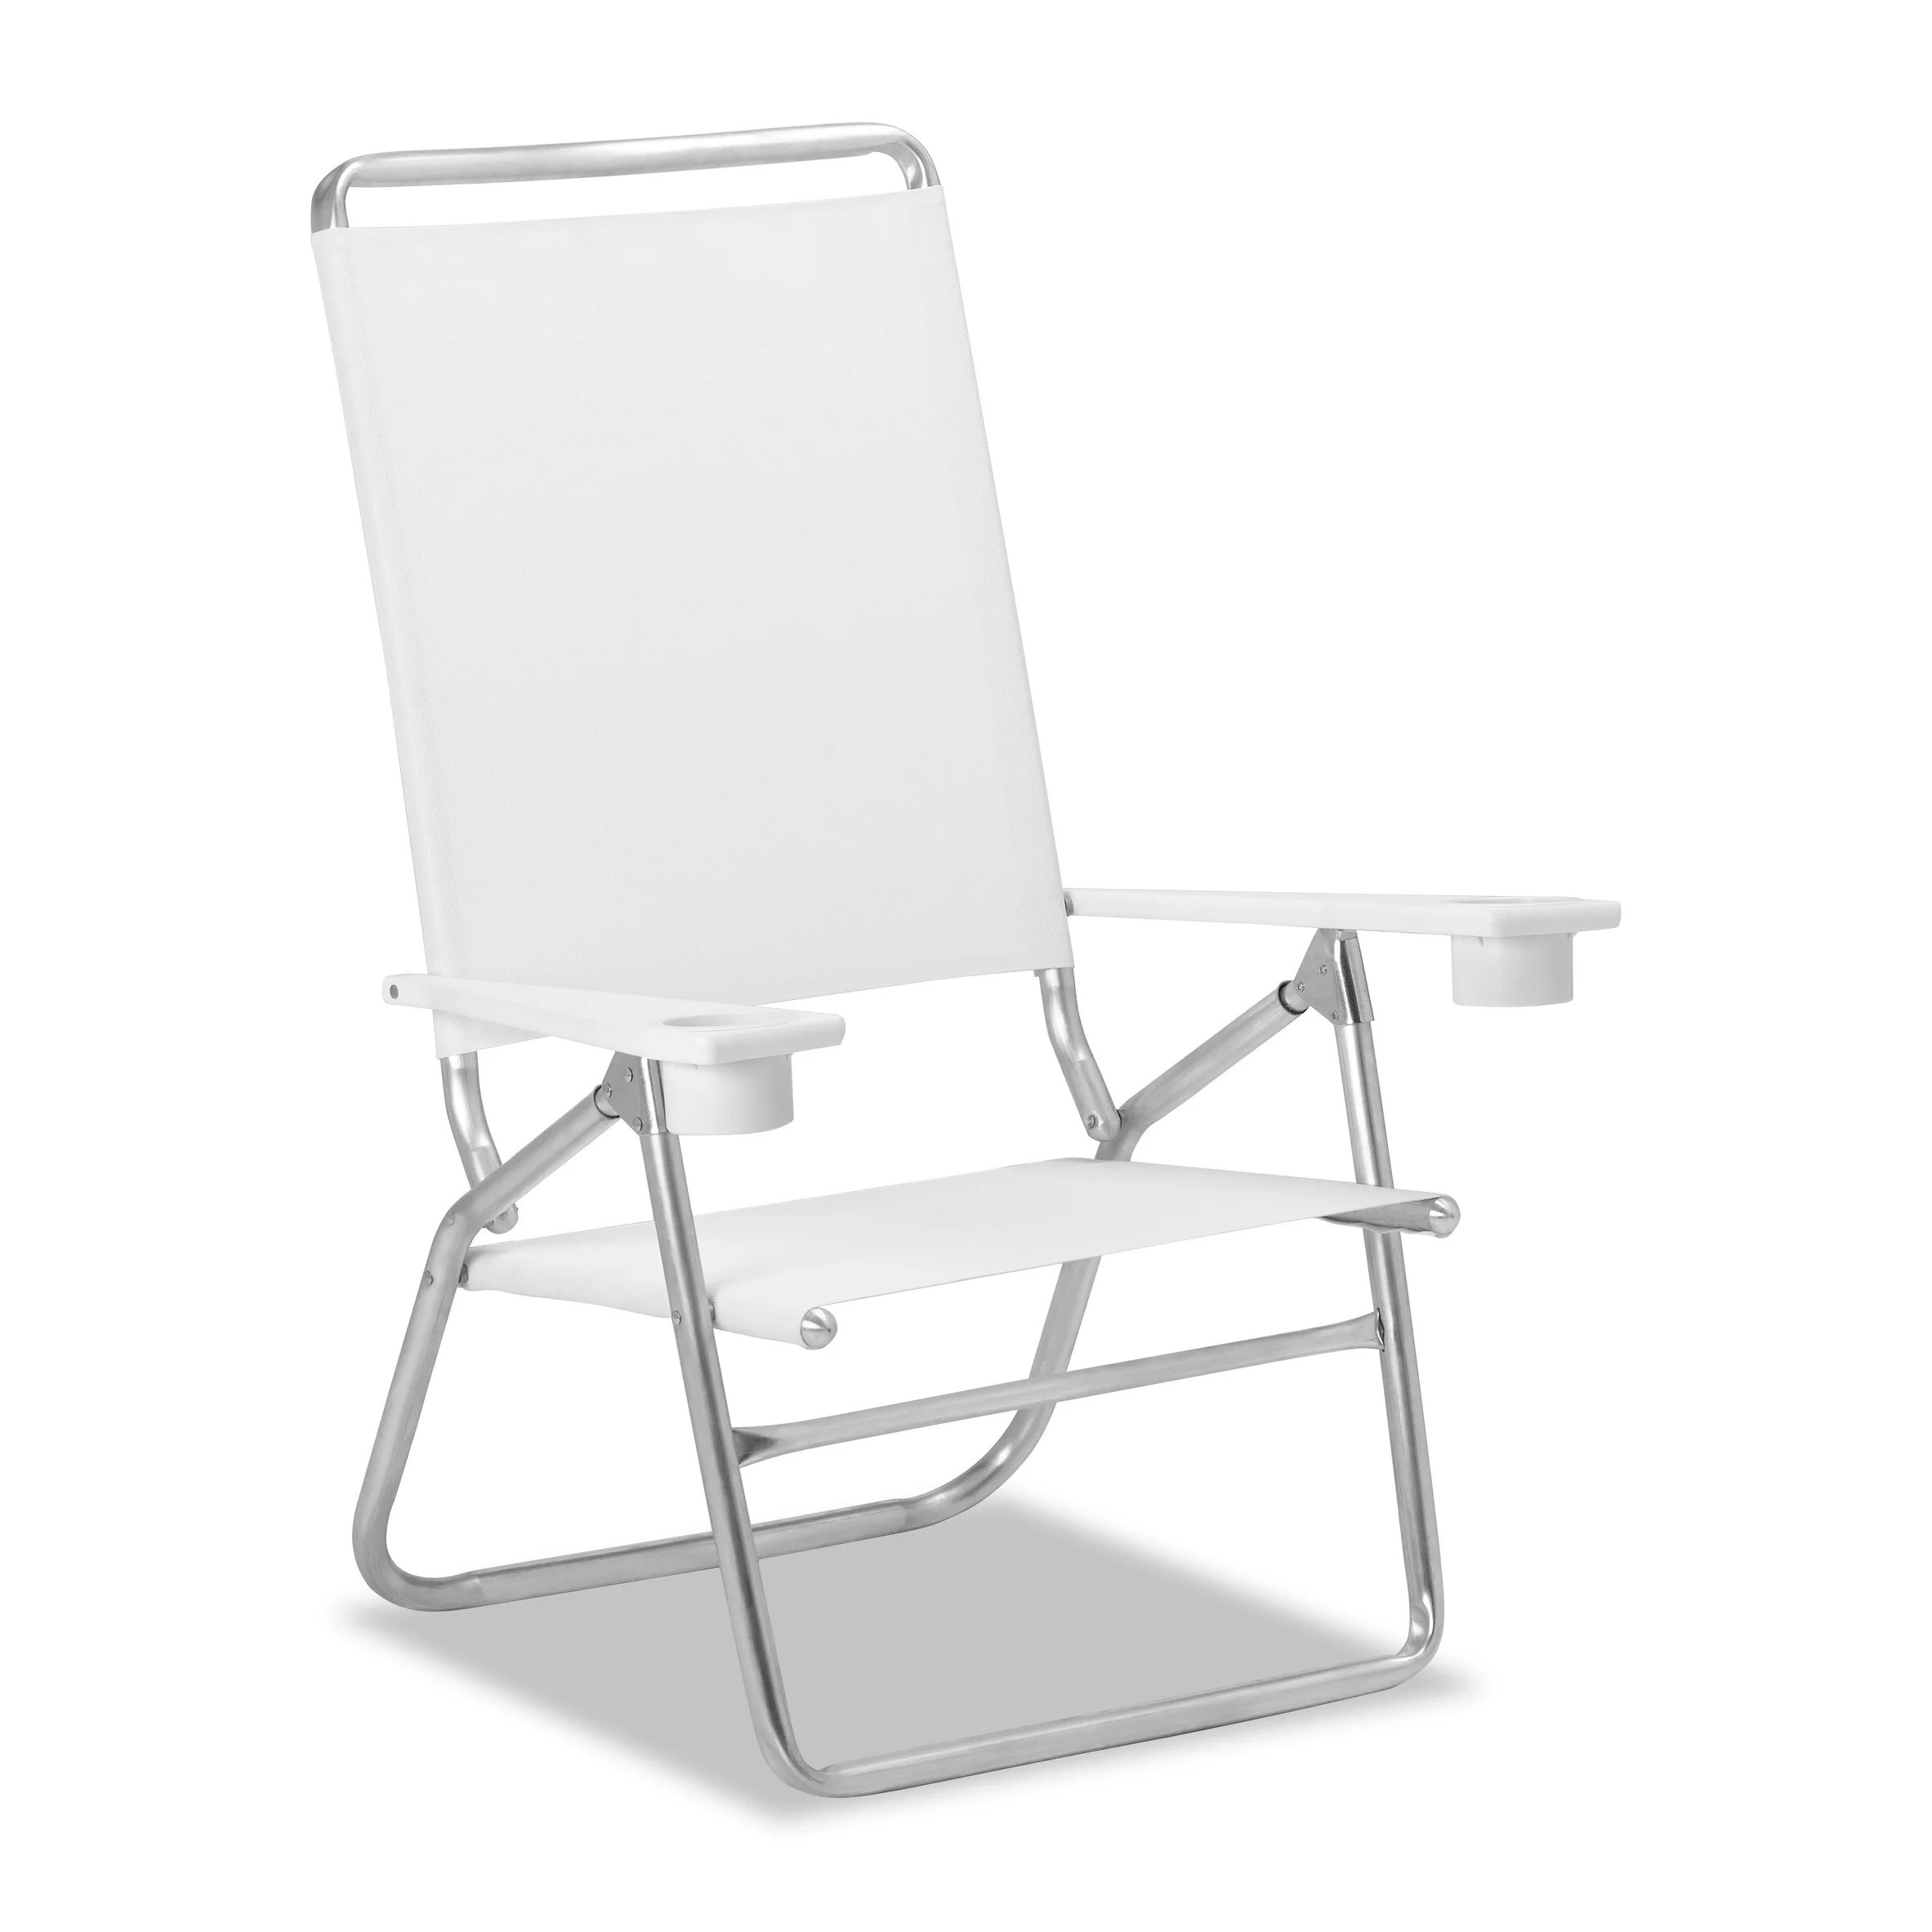 Telescope Beach Chair Telescope Casual Light N Easy High Boy Folding Beach Arm Chair With Marine Grade Polymer Arms White